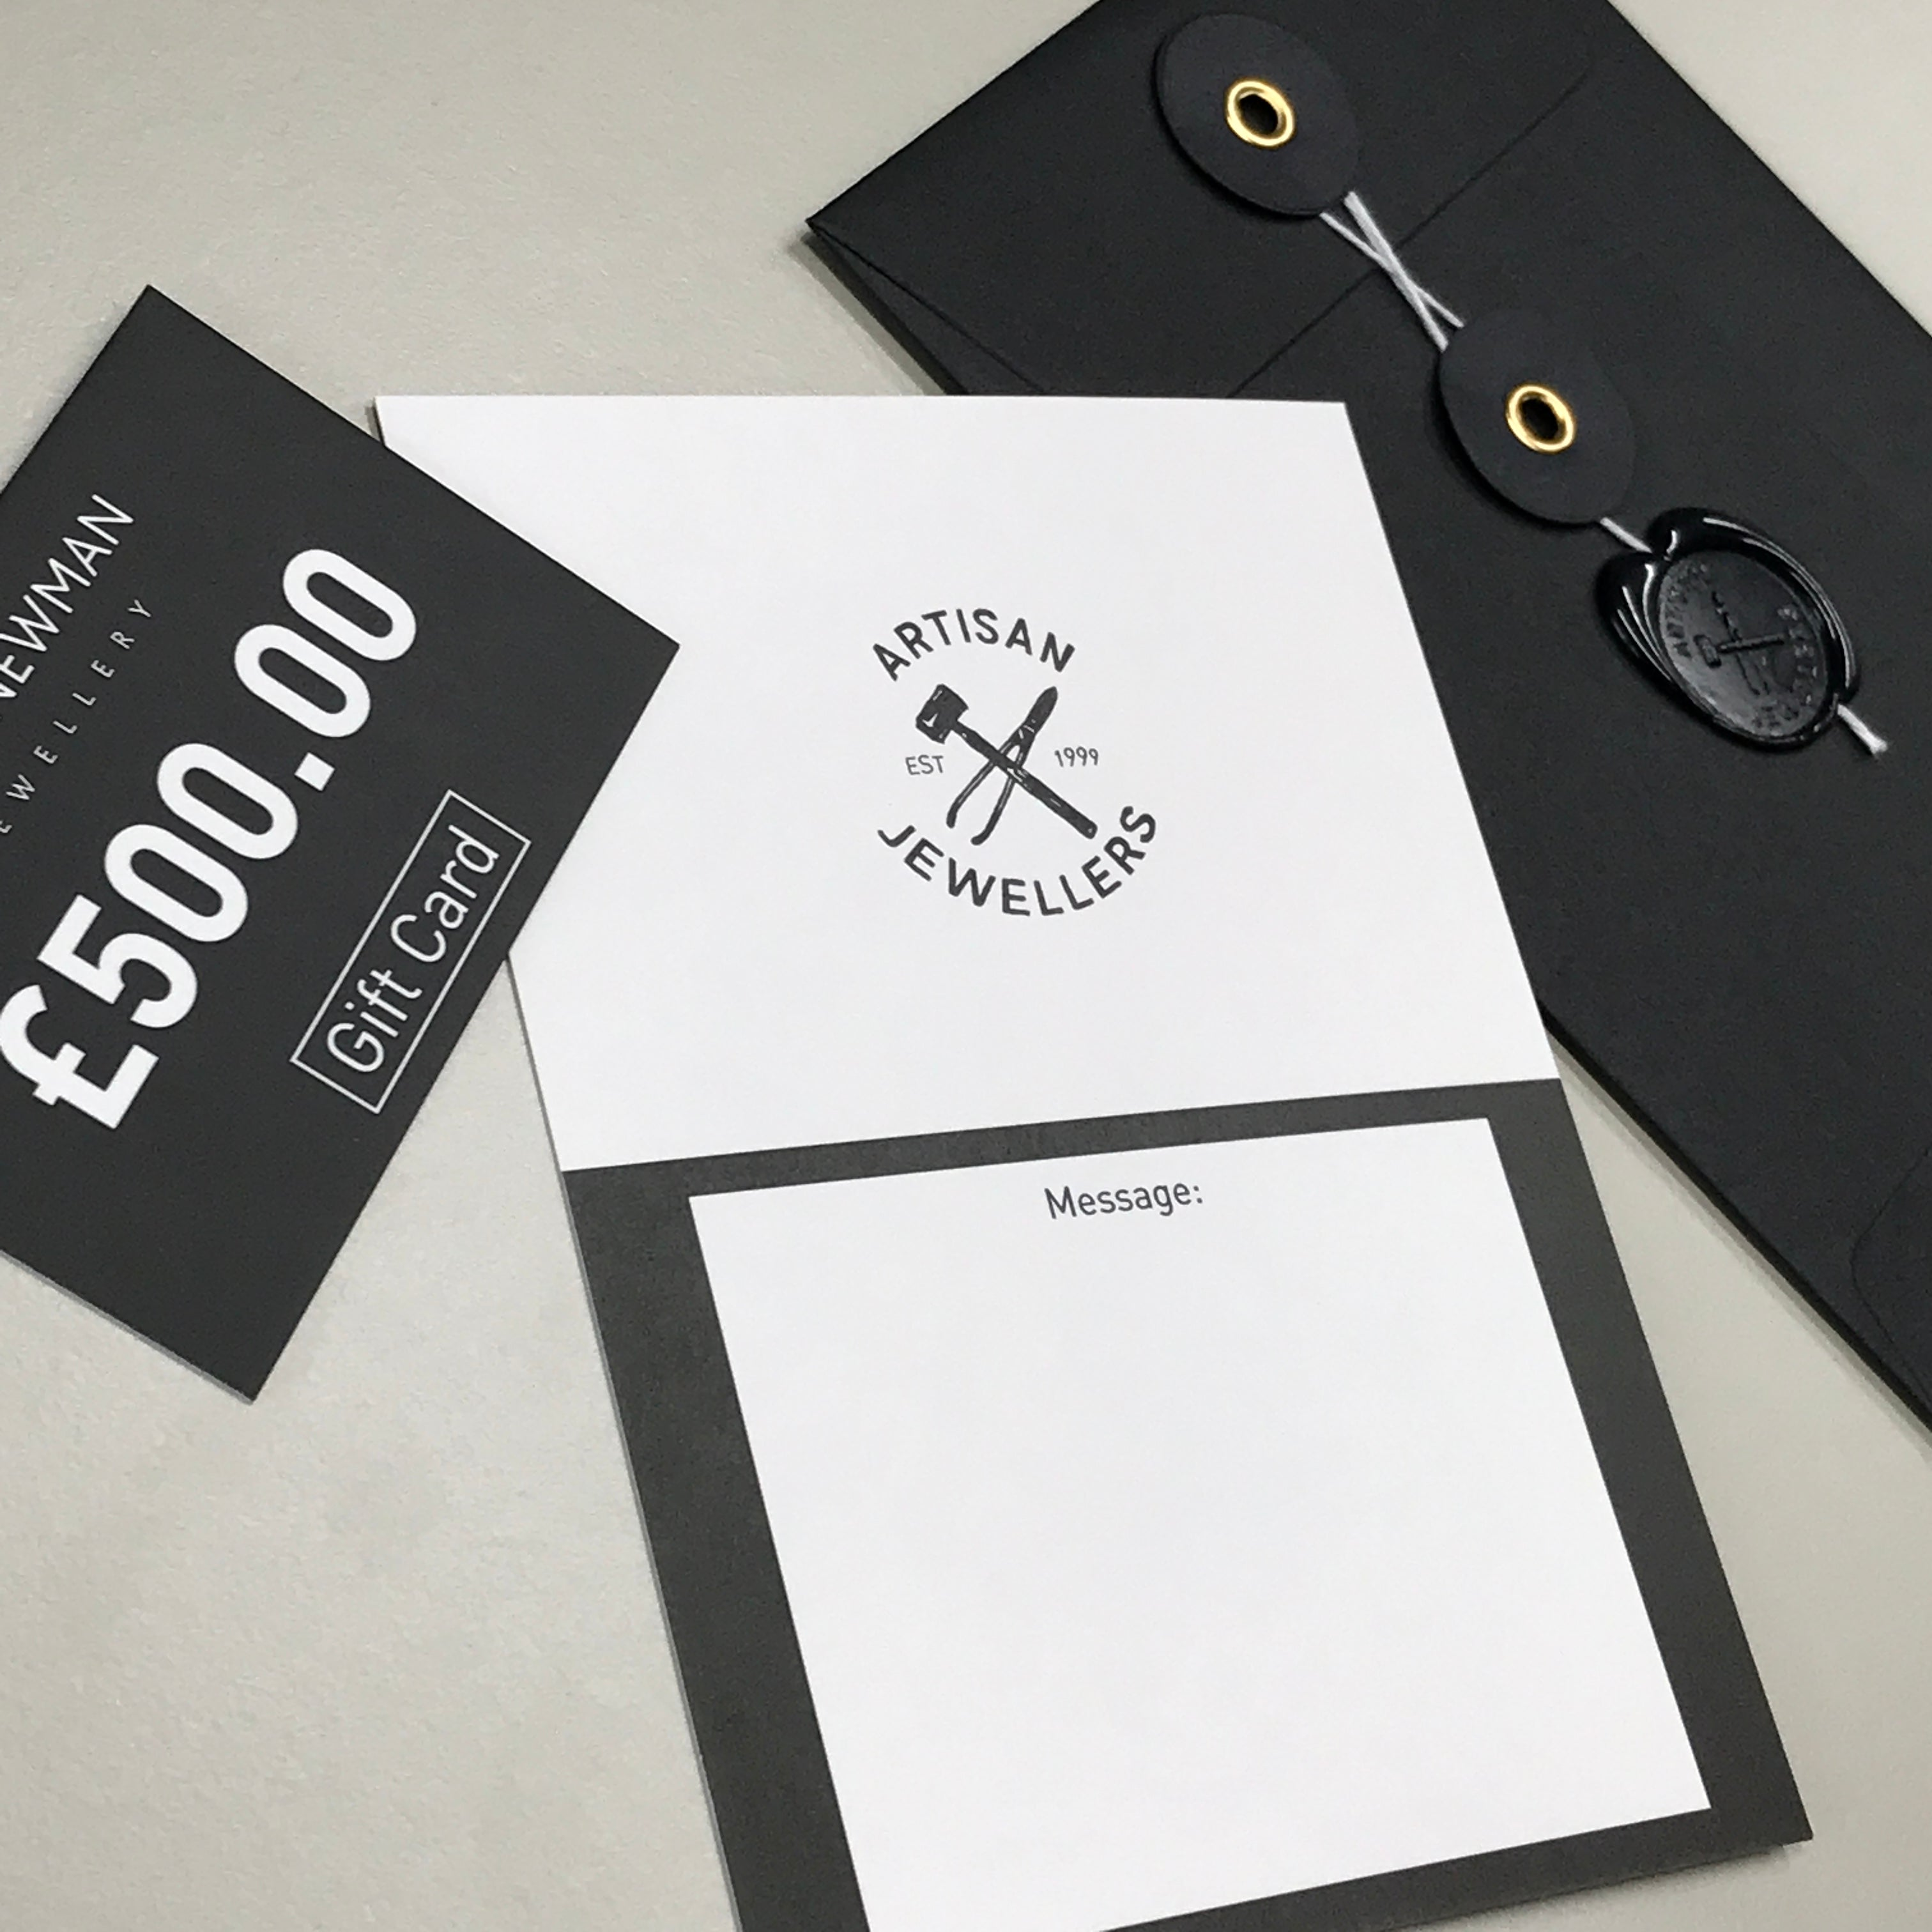 5. £250 Gift Card - James Newman Jewellery